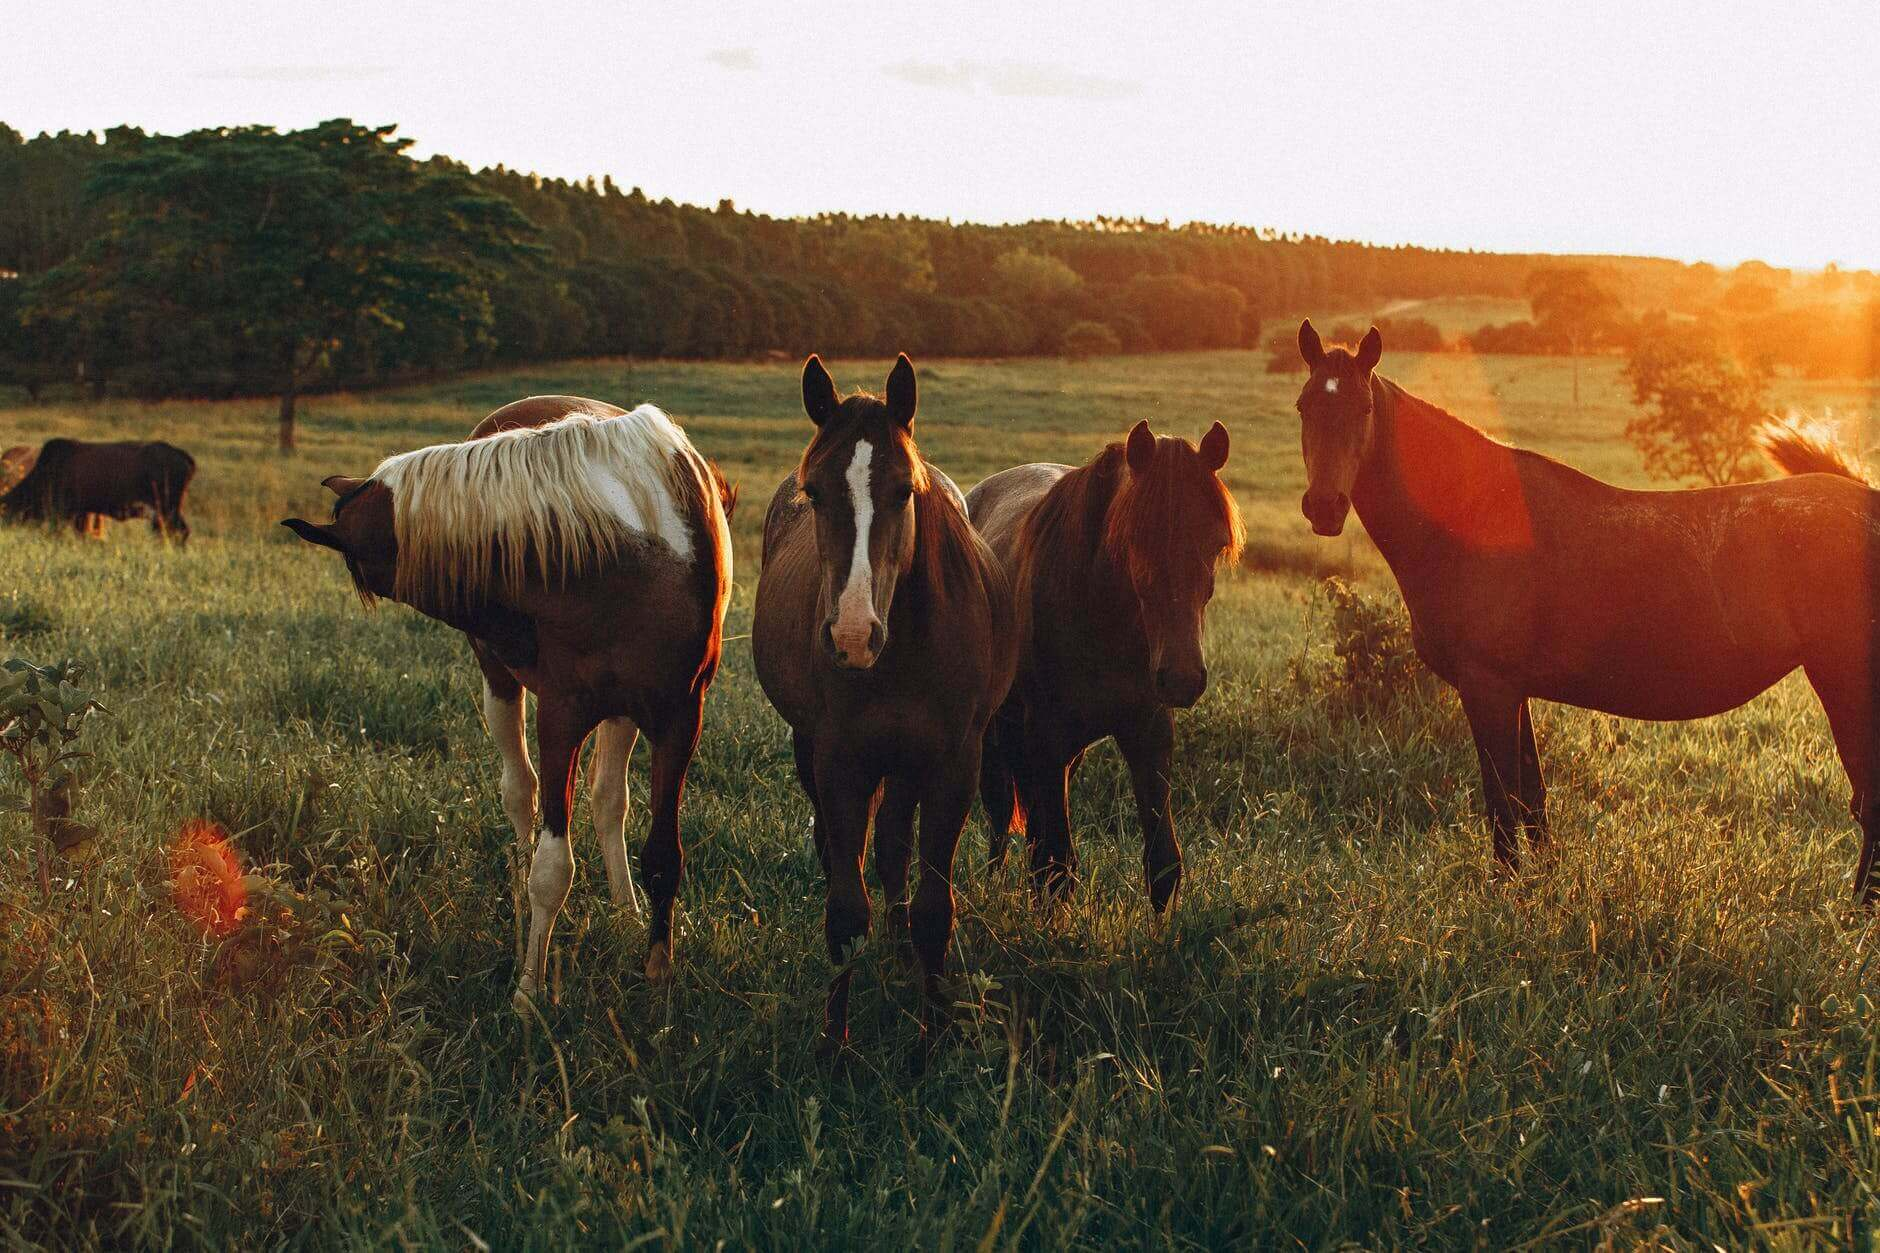 In he forefront of the photo there are four horses, all brown with a bit of white on their faces.in the background, more horses are grazing and there is a forest t the edge.